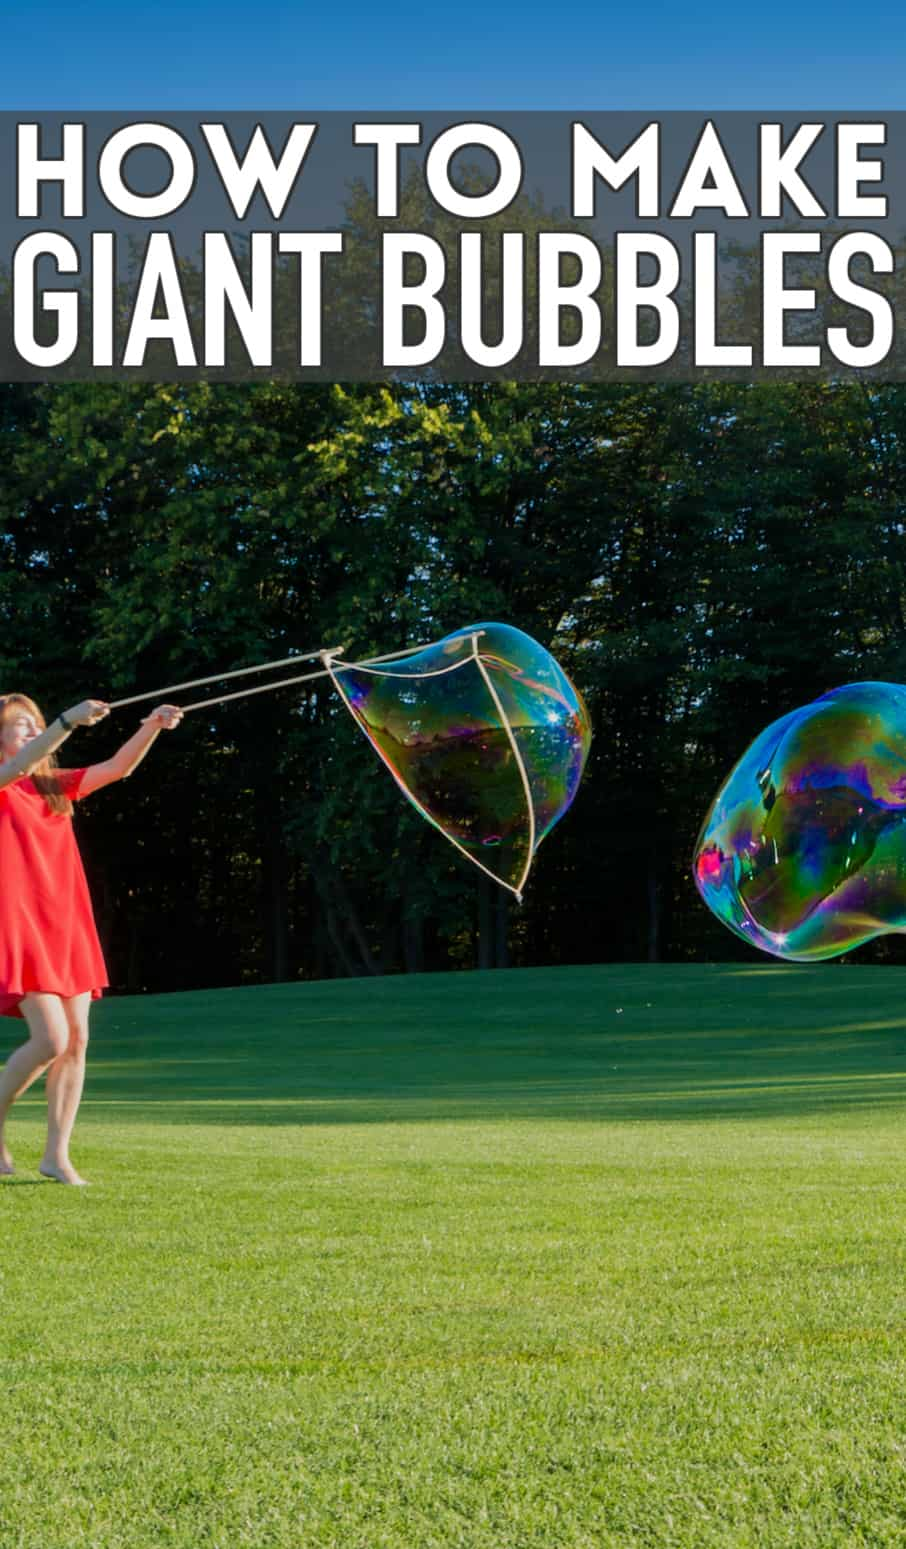 giant bubbles with wand